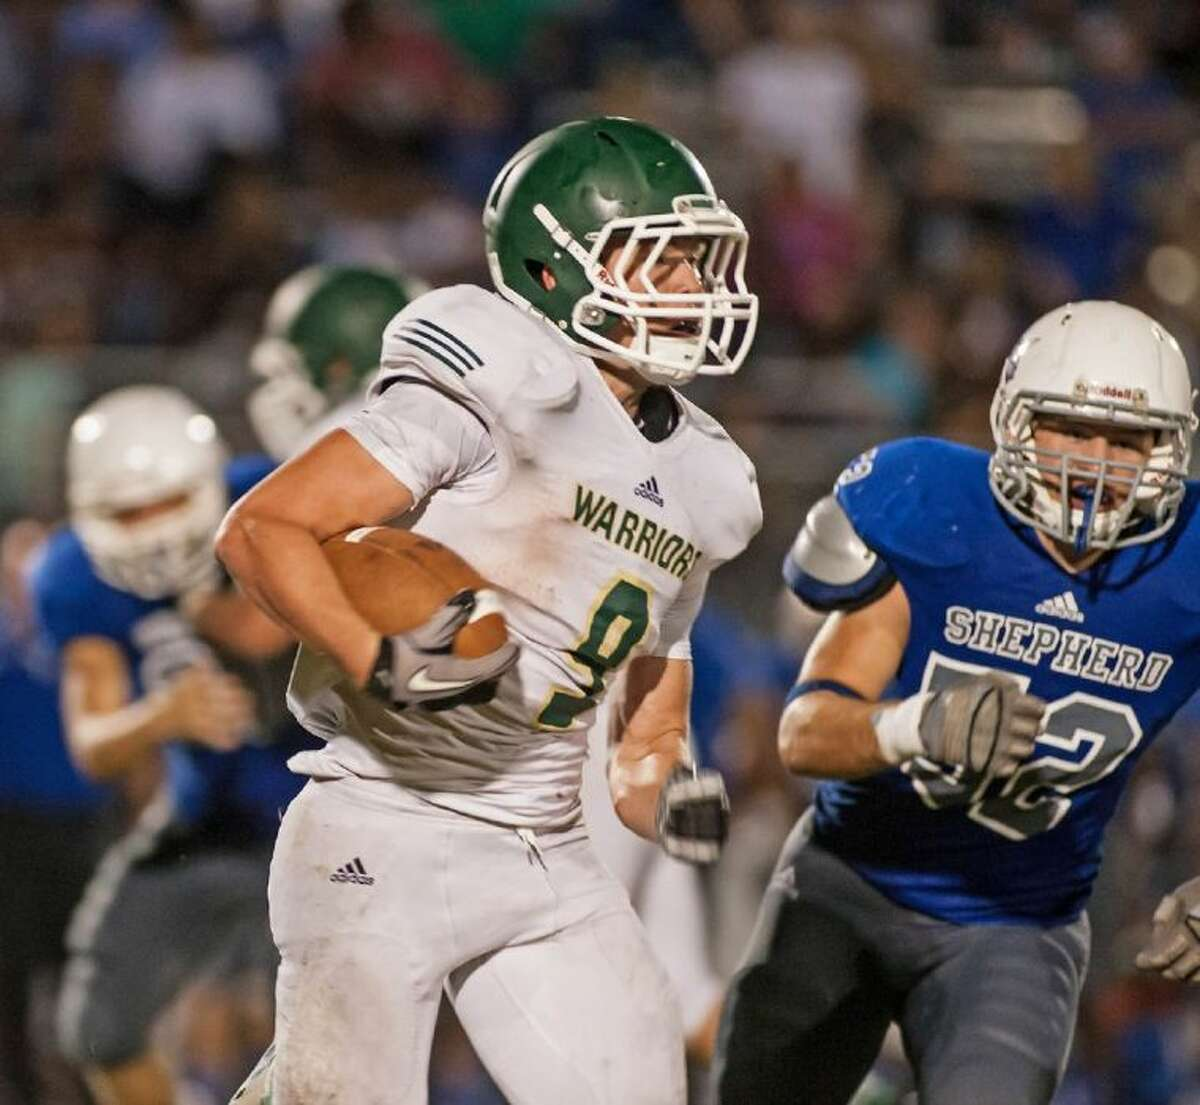 Luke Hudson ran for 174 yards and three touchdowns last week against Rosehill Christian. The Warriors totaled 312 yards on the ground as a team in the 36-0 victory.